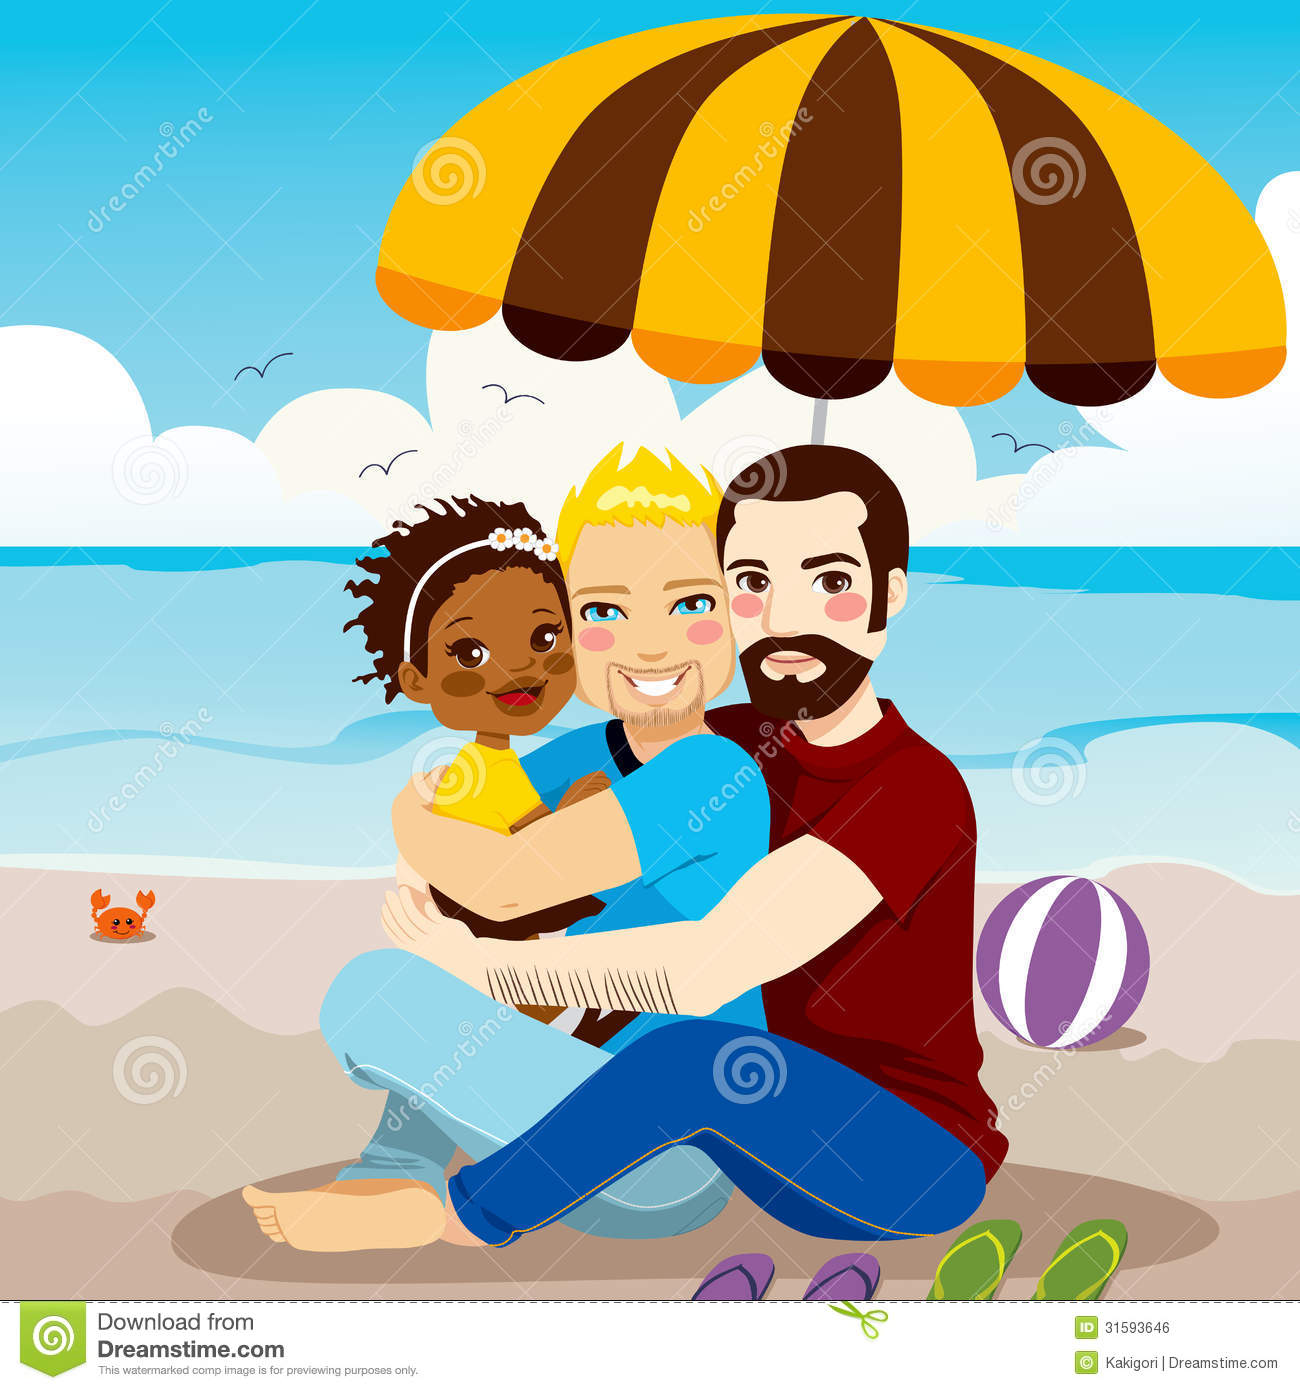 Download royalty free Happy gay family women and baby vector